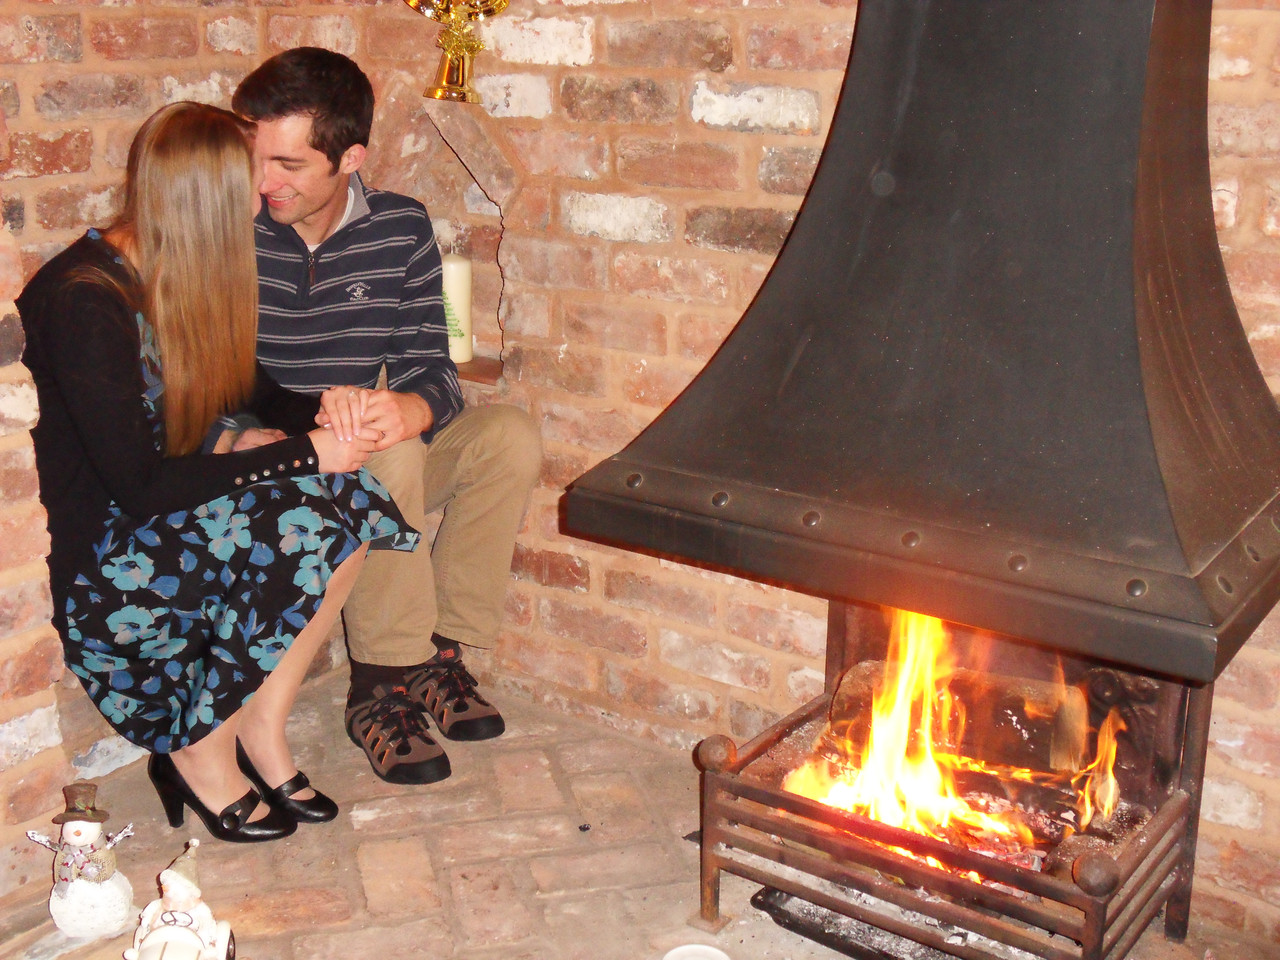 A couple are newly engaged and snuggle near a romantic fireplace